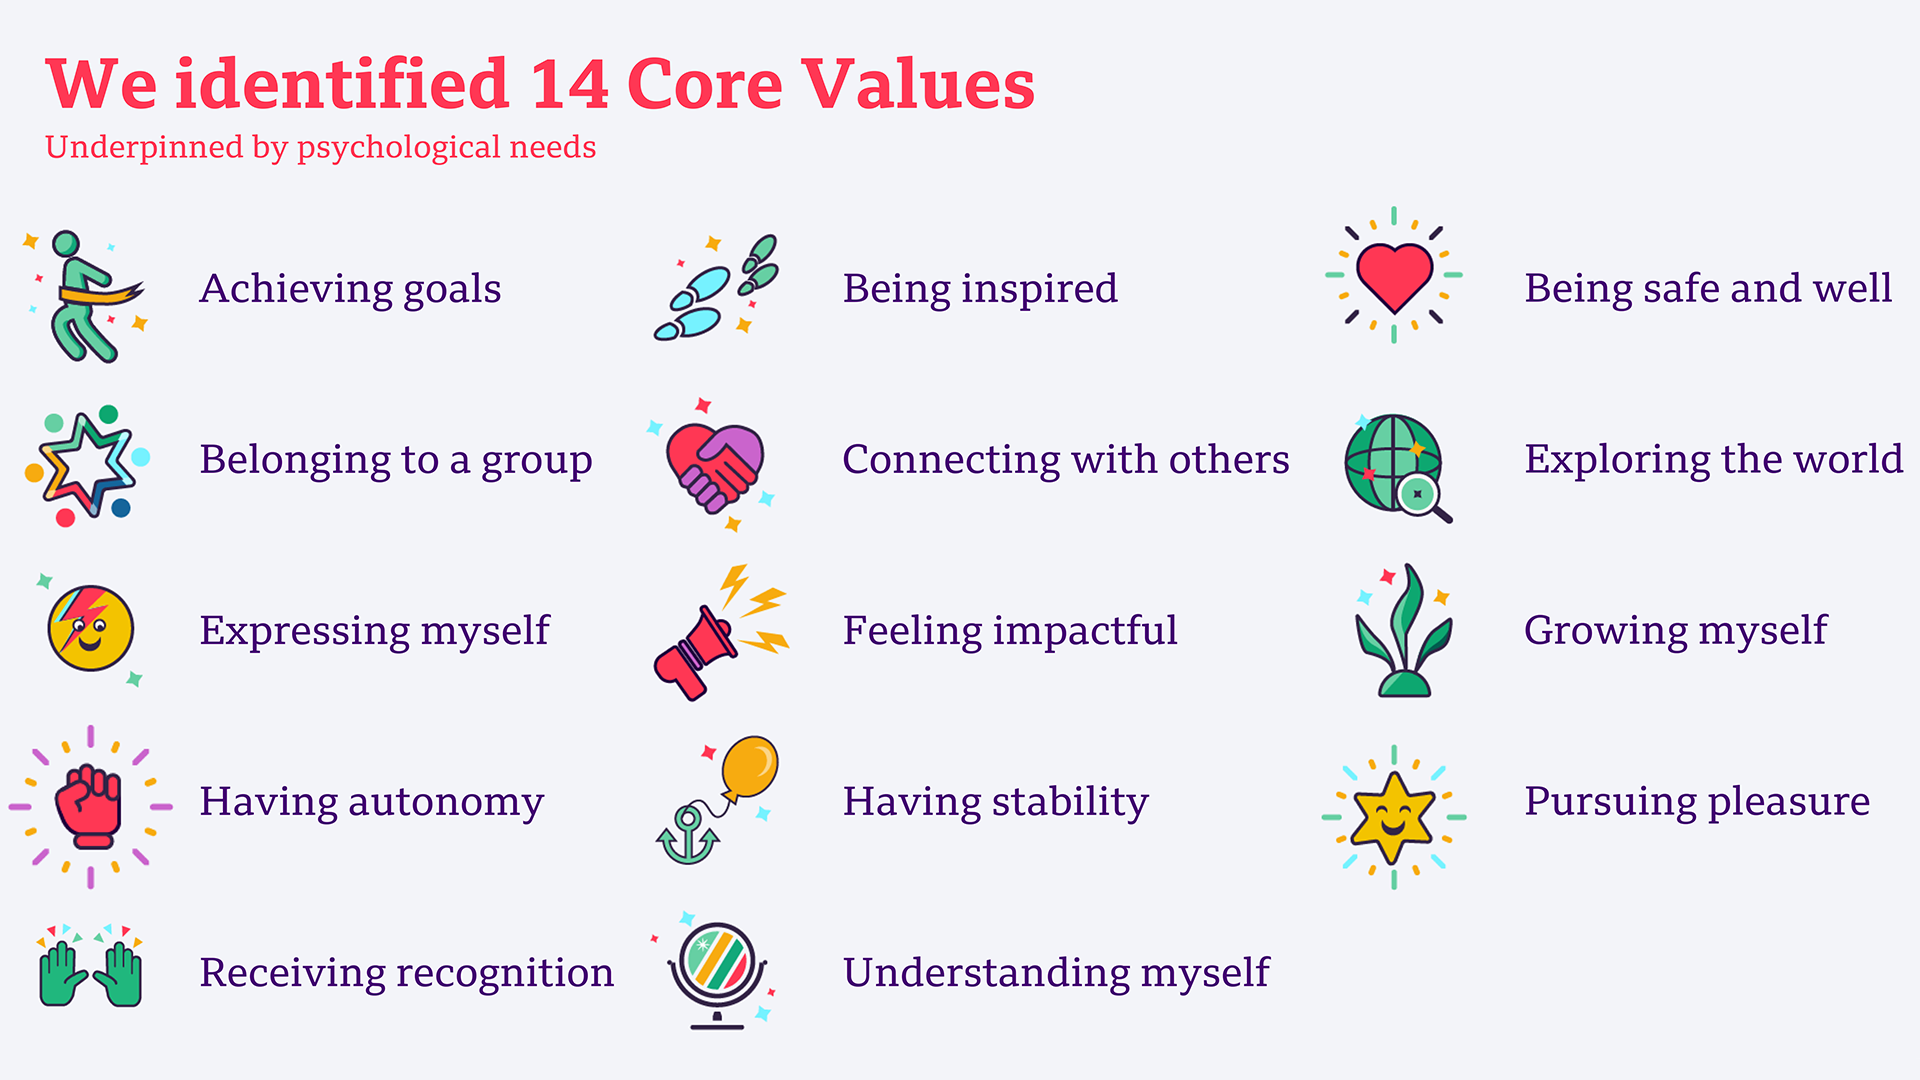 The 14 Core Values